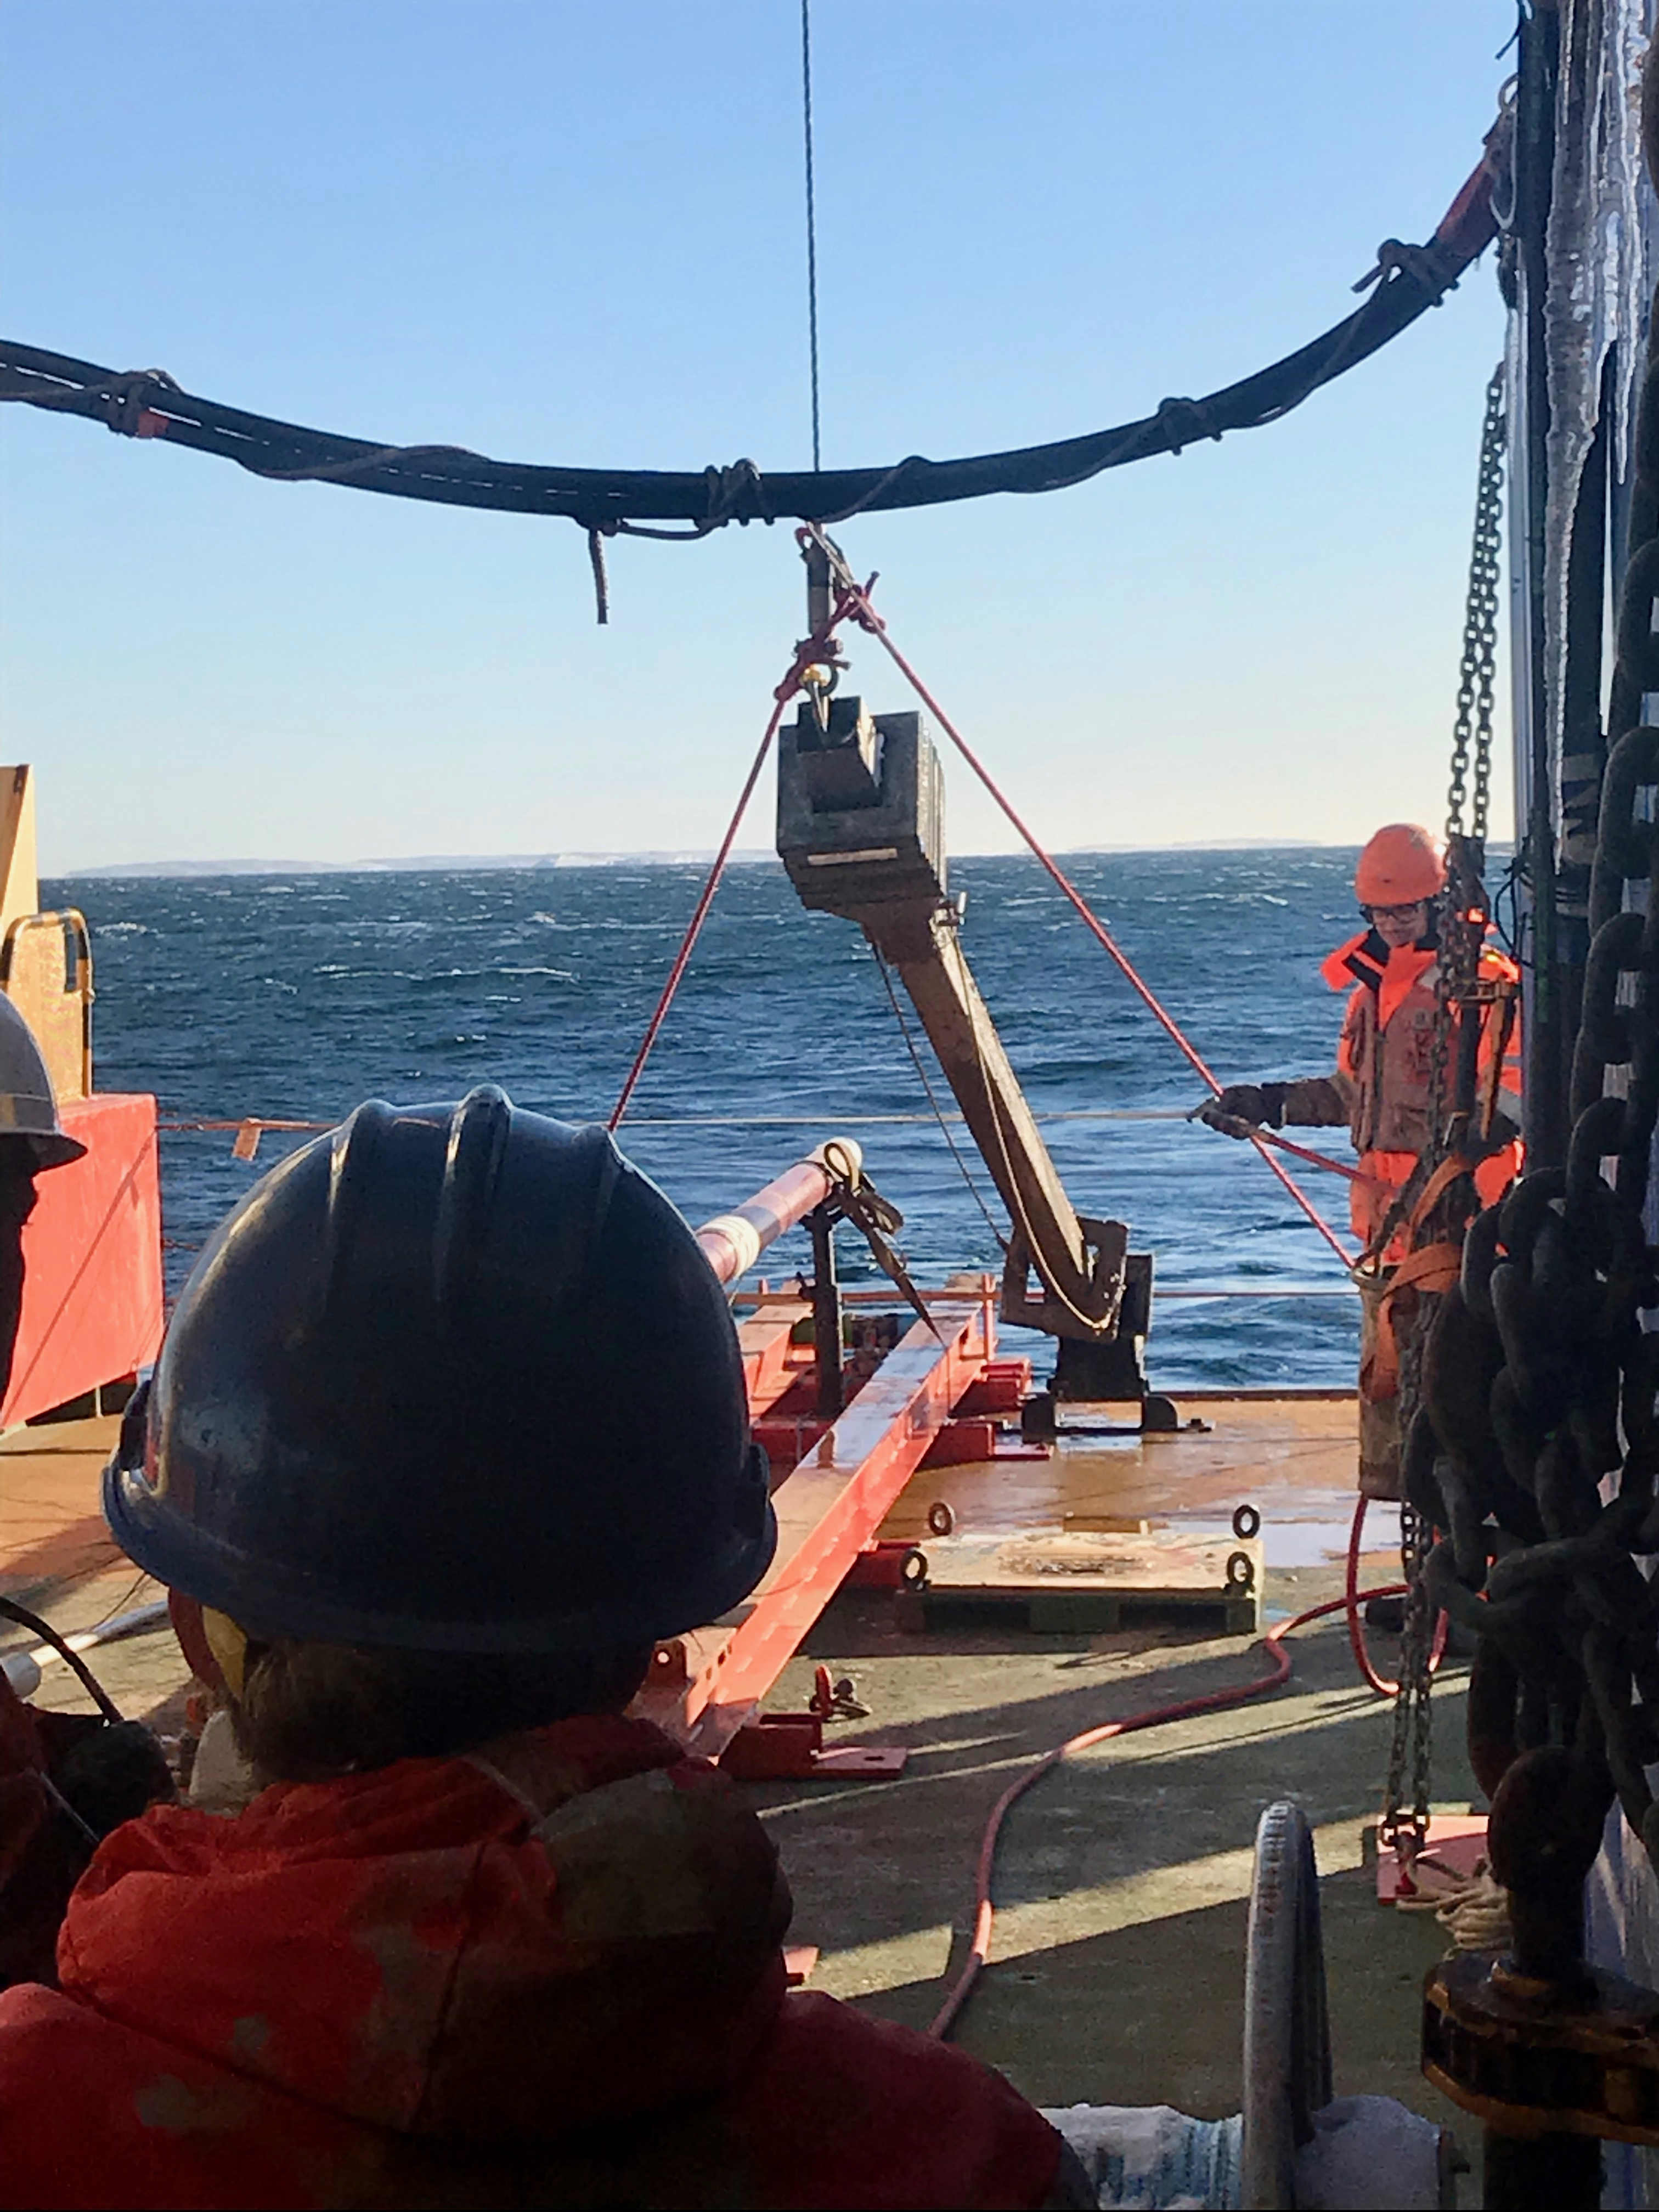 Peter Sheehan helps to secure and hose off the Kasten core just brought back up from the seafloor. Becky Minzoni waits excitedly for the core to be secured on the ship so that her team can open up the core to see if they successfully captured a sediment core.